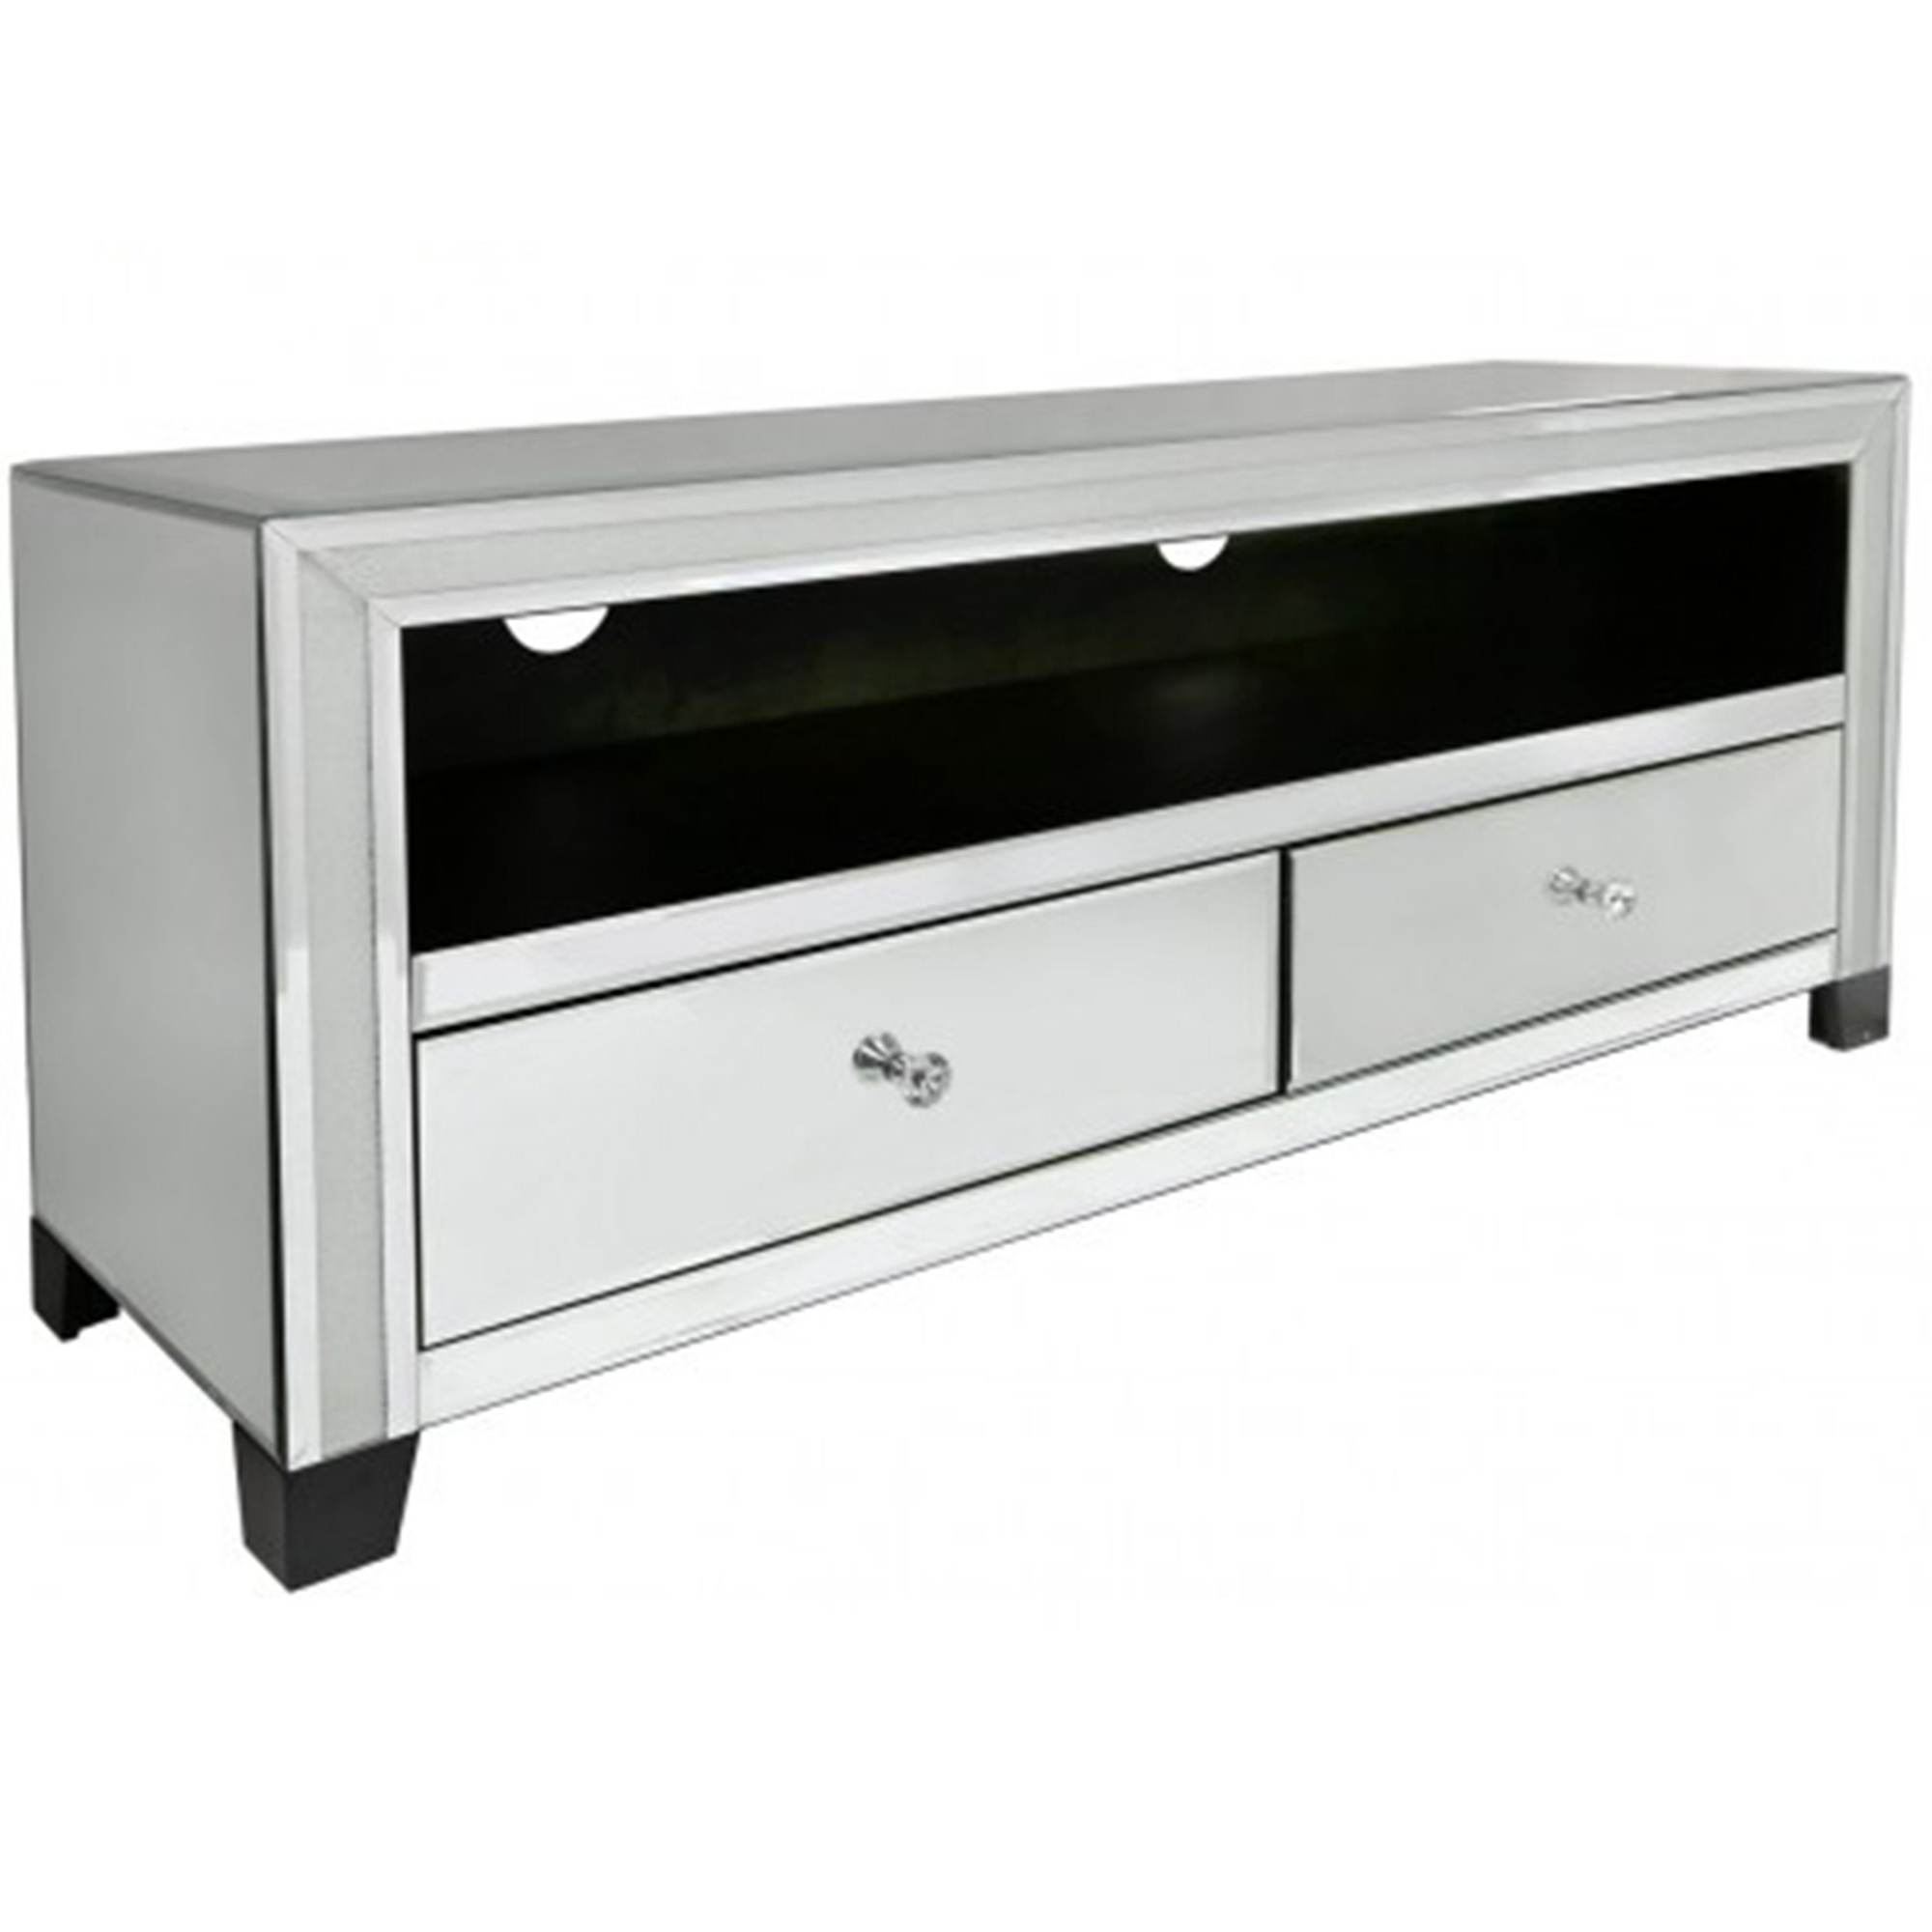 Charmant Turin Mirrored TV Cabinet